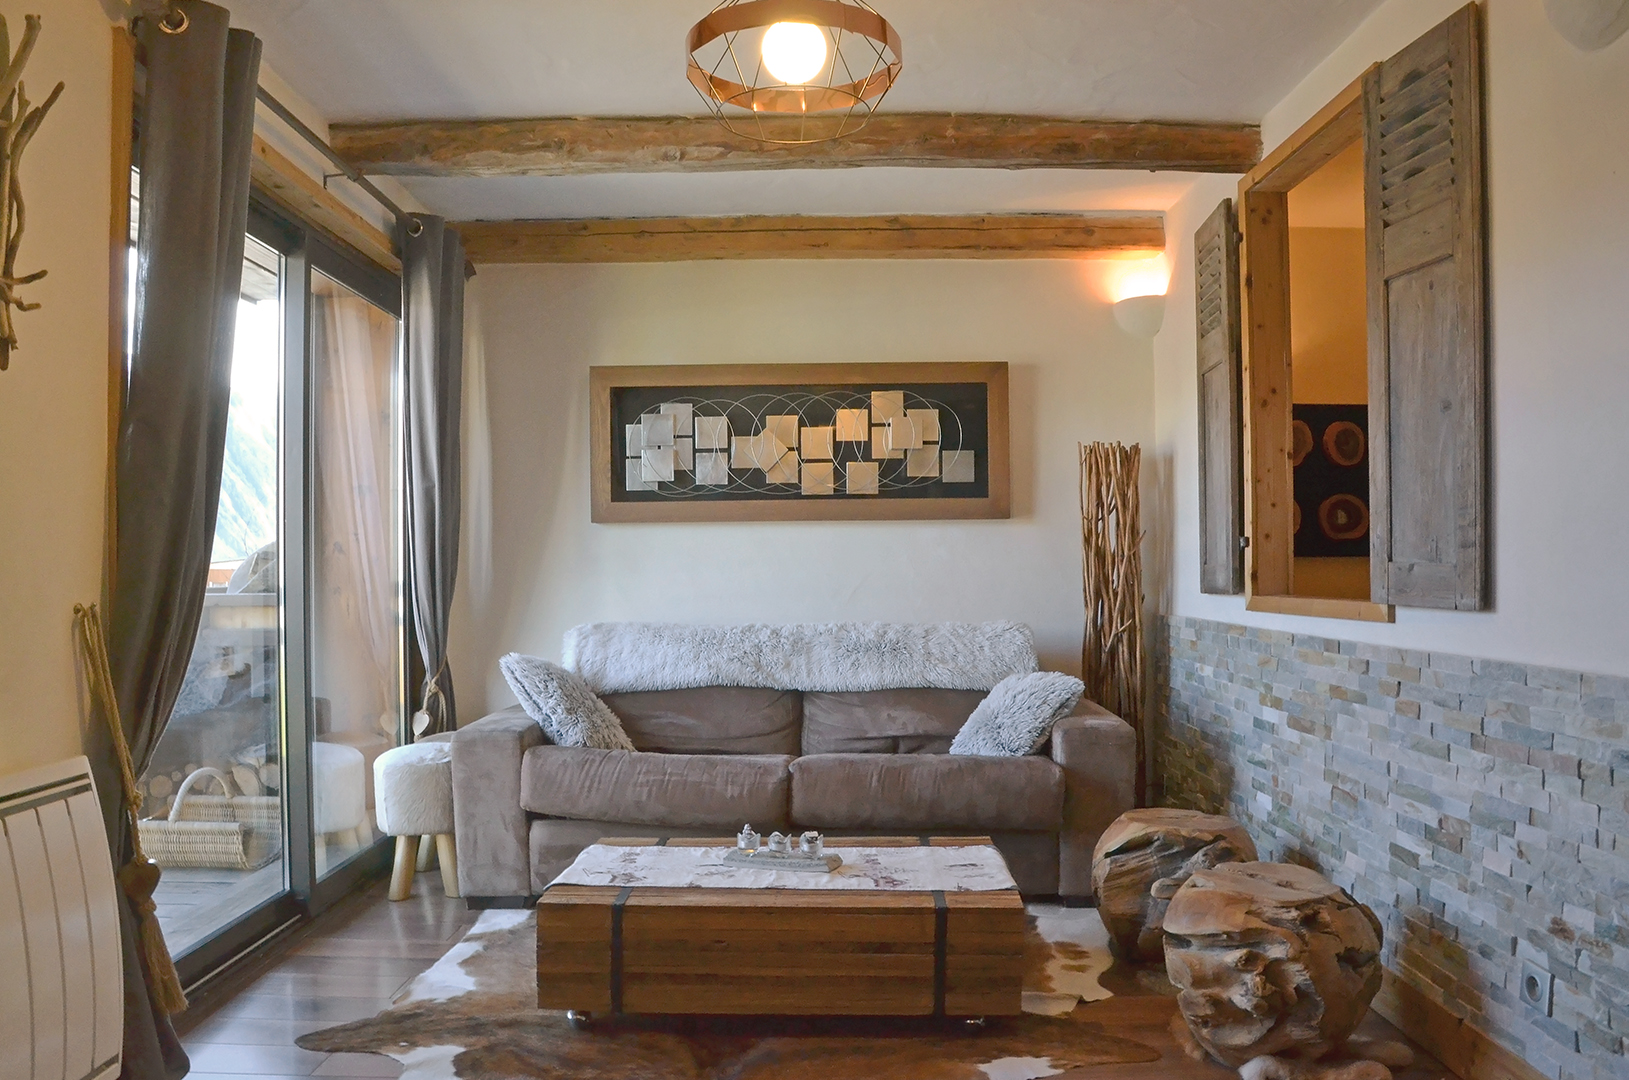 Location d'appartements particulier courchevel, luxe et charme location à Courchevel 1850